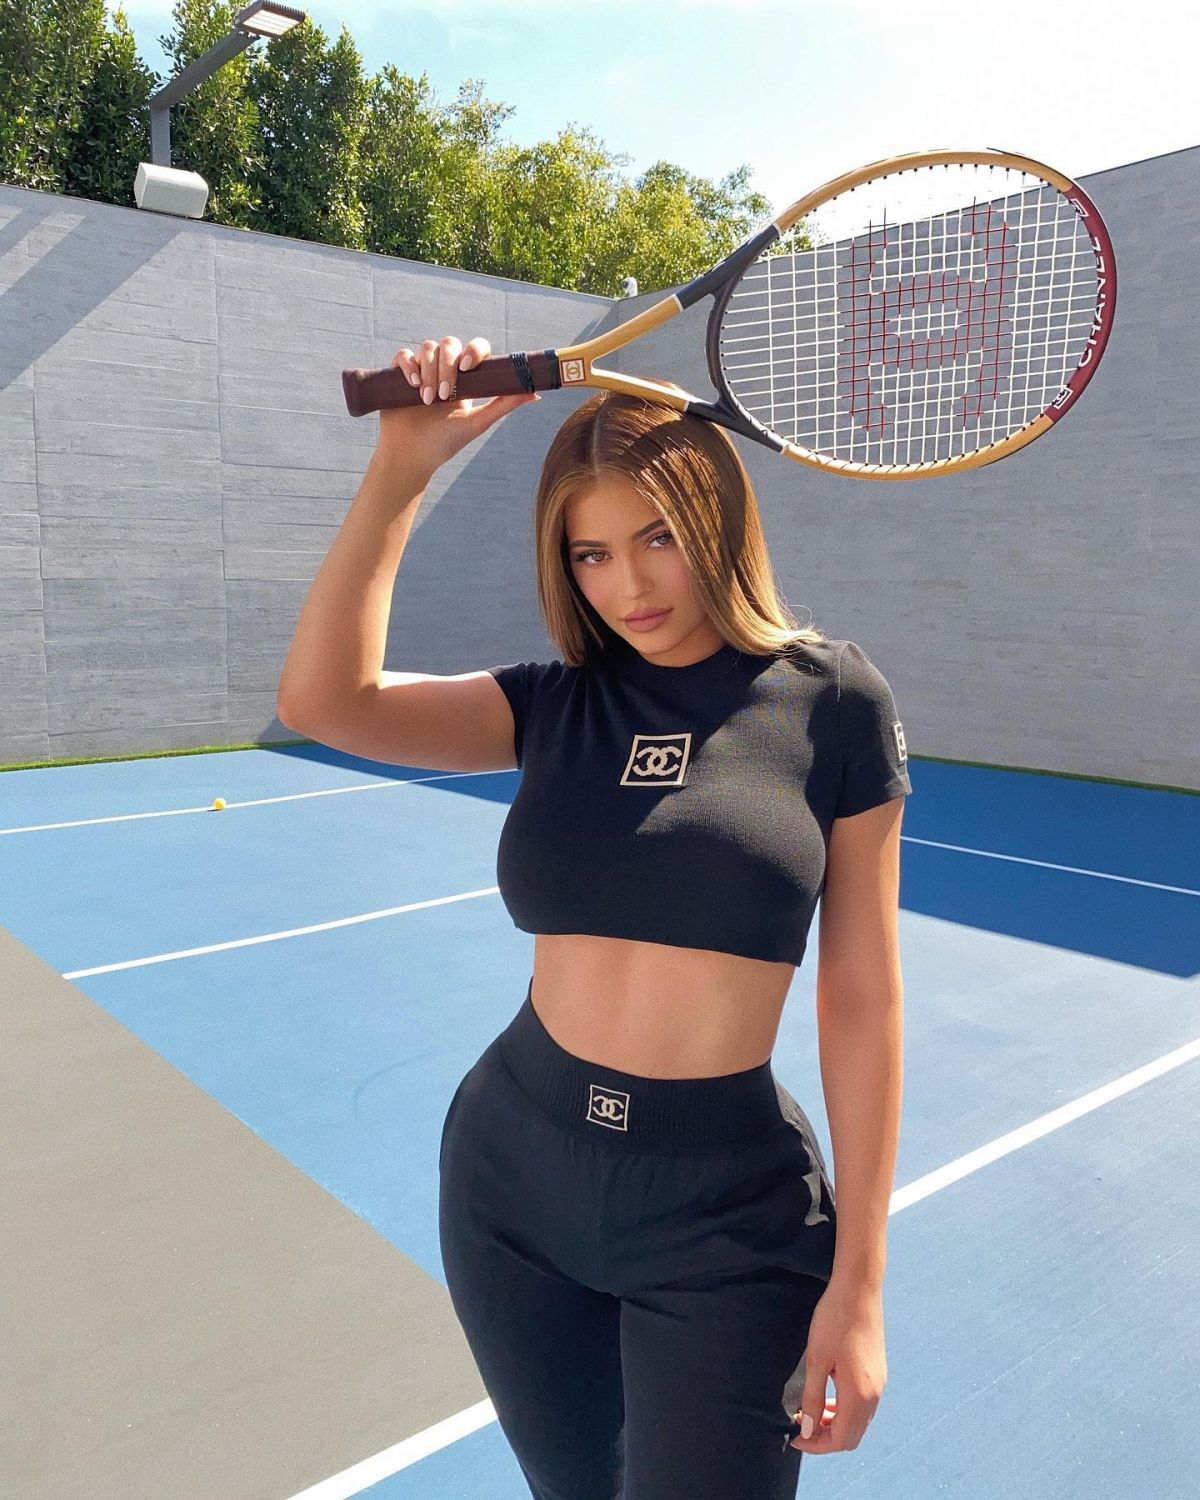 Kylie Jenner Models Chanel Outfit And Matching Racket On Tennis Court Of Her Home Instagram Photos 05 04 2020 Hawtcelebs